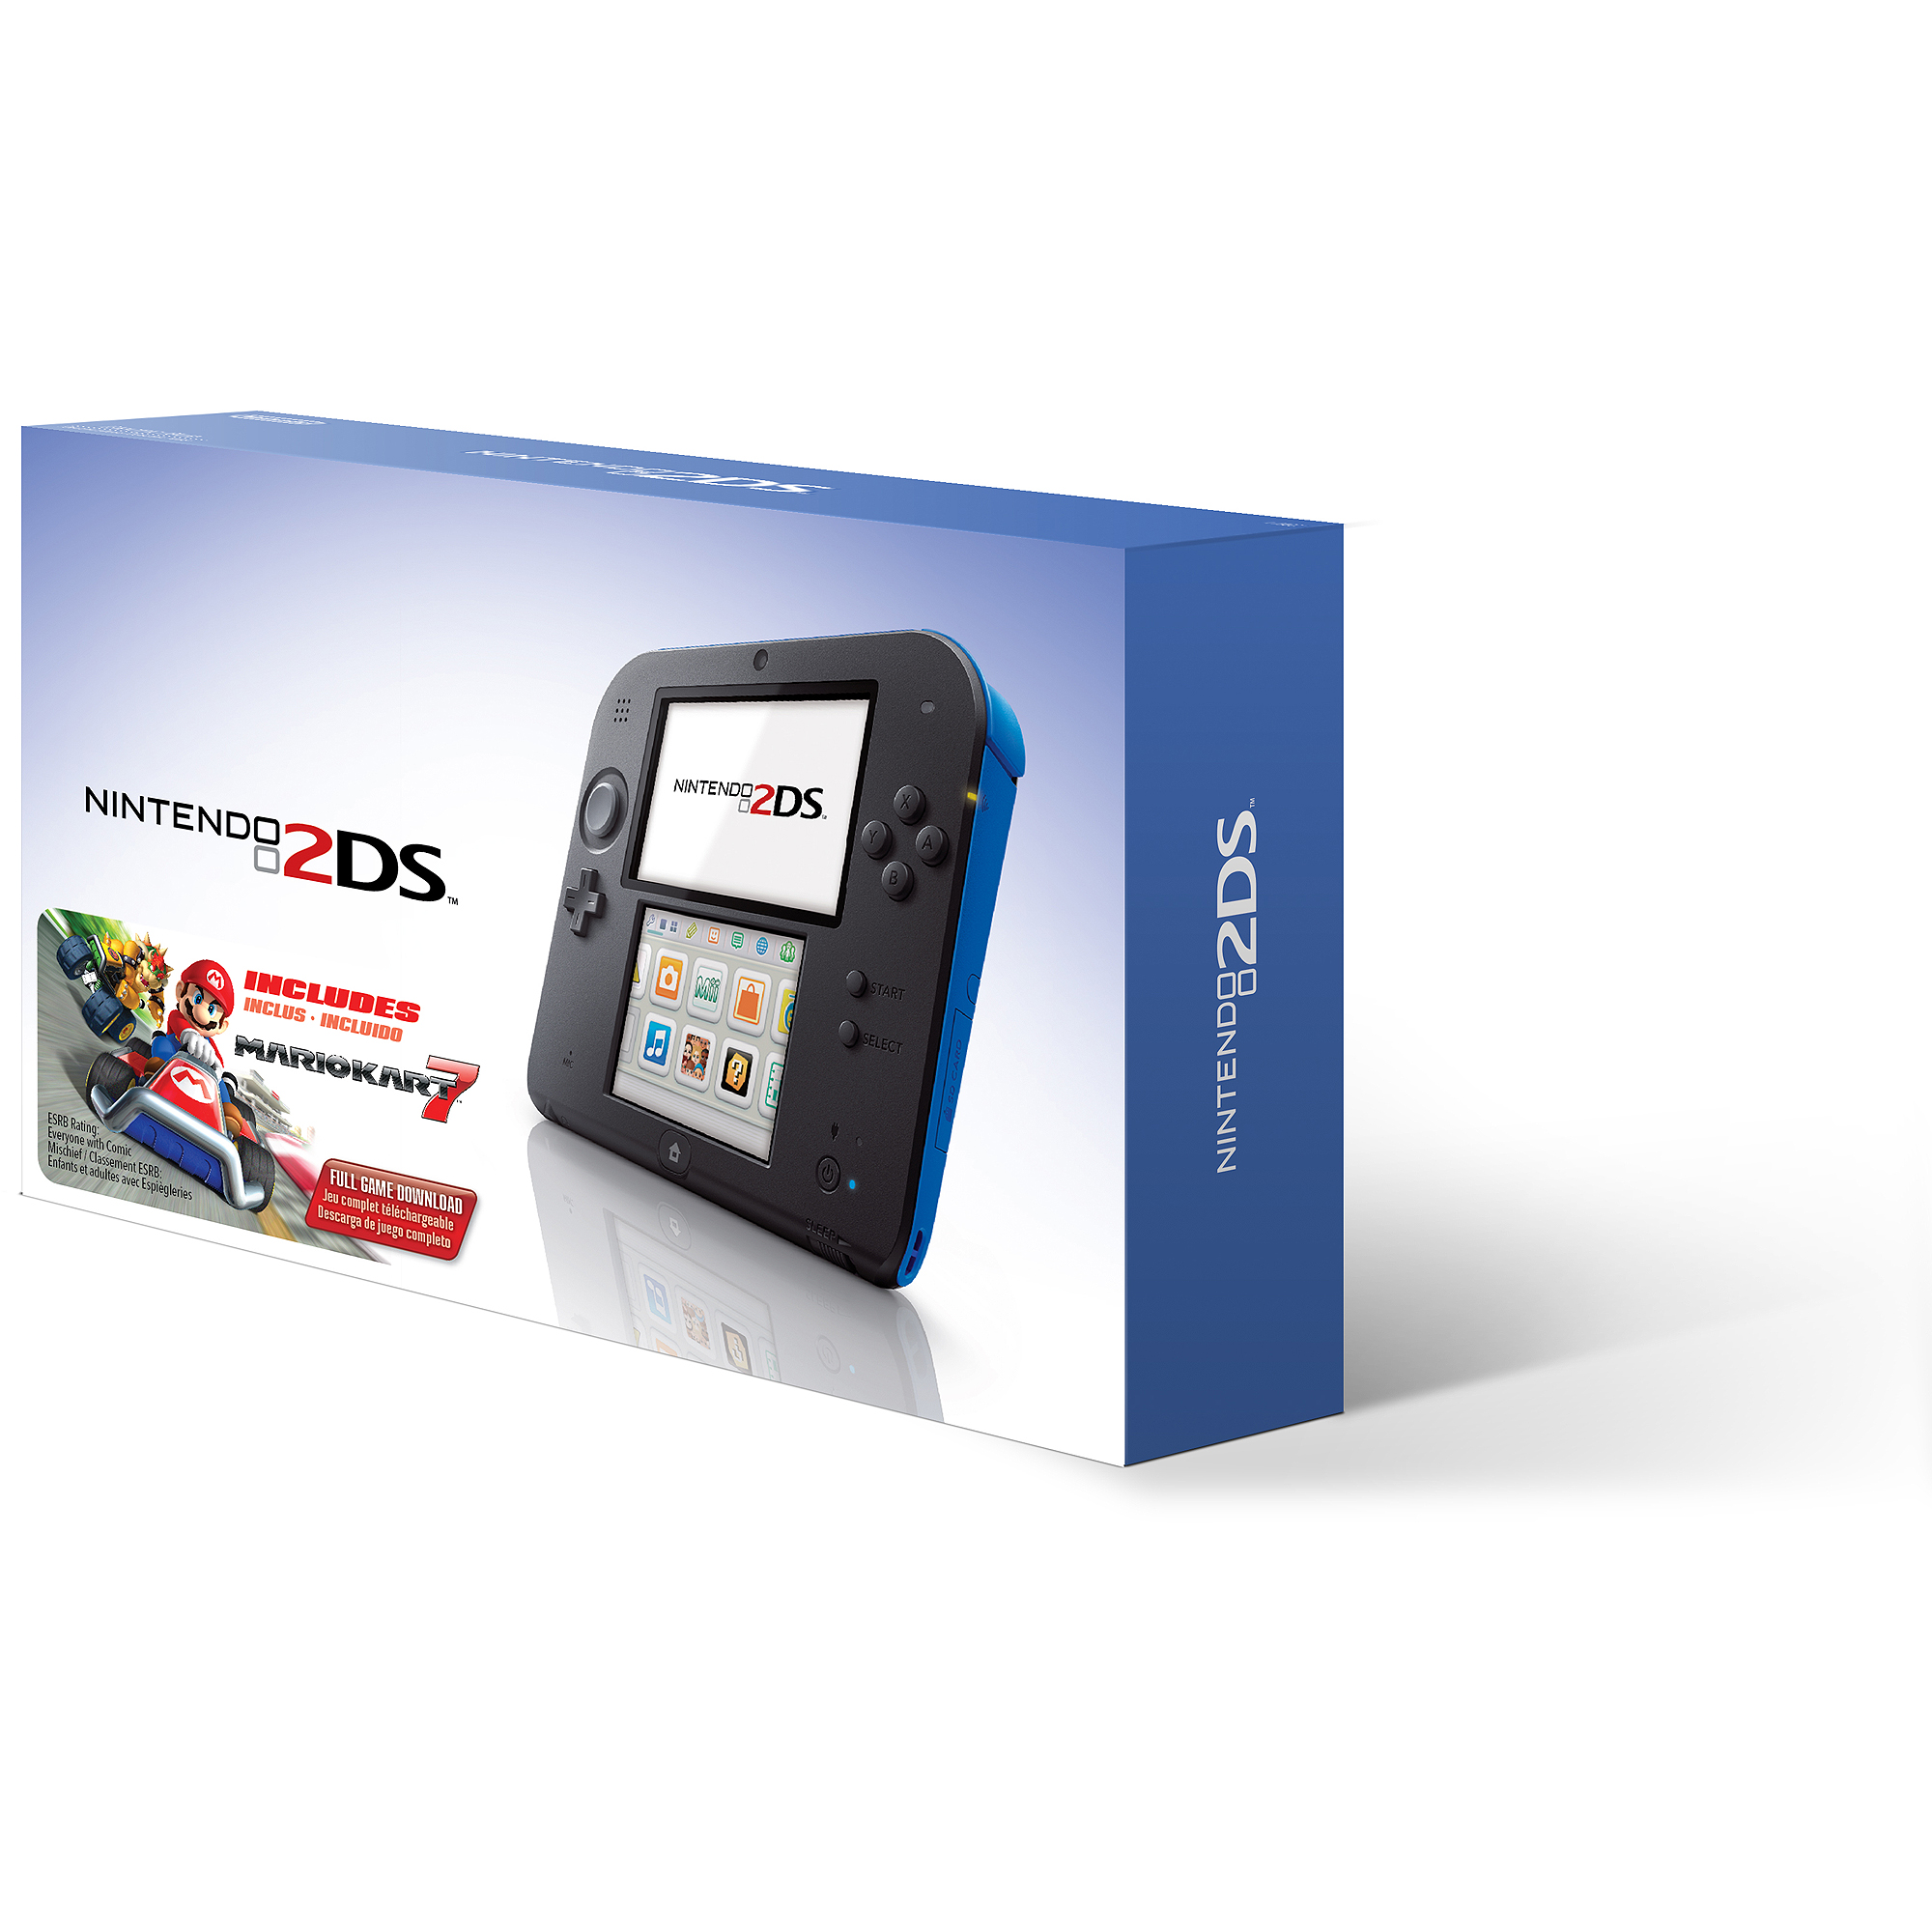 Nintendo 2DS with Mario Kart 7 Game, Electric Blue